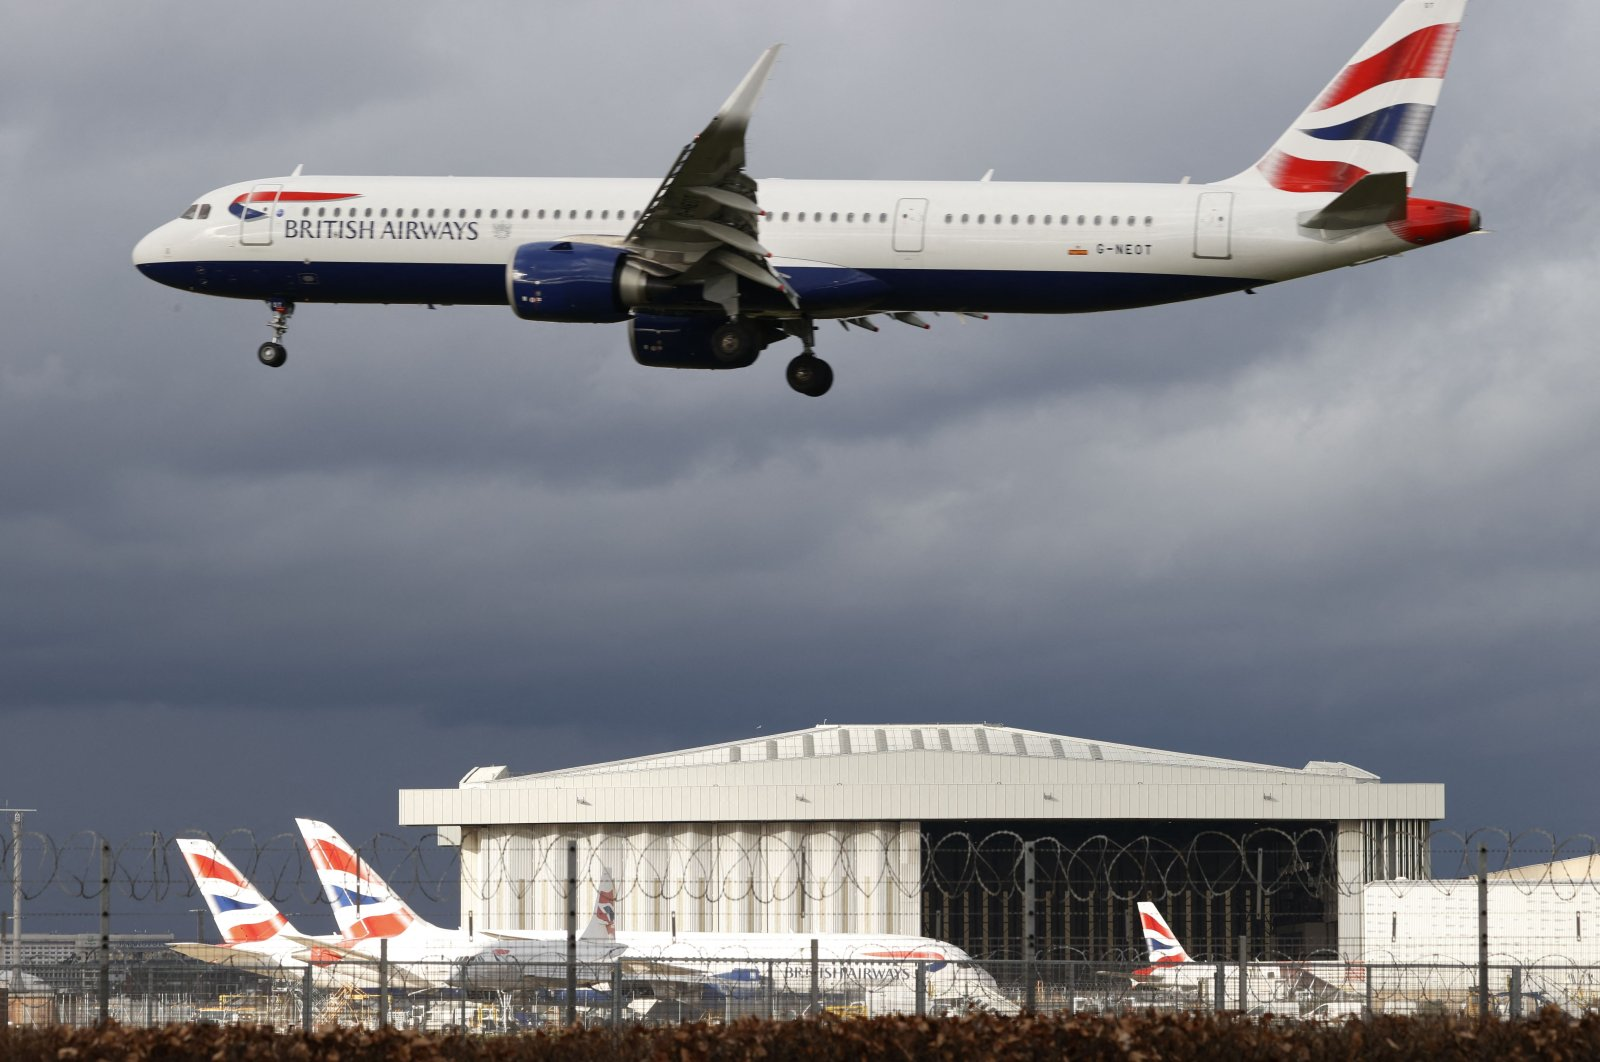 A British Airways aircraft flies over parked British Airways planes on the tarmac at London Heathrow Airport in west London, U.K., Feb. 5, 2021. (AFP Photo)